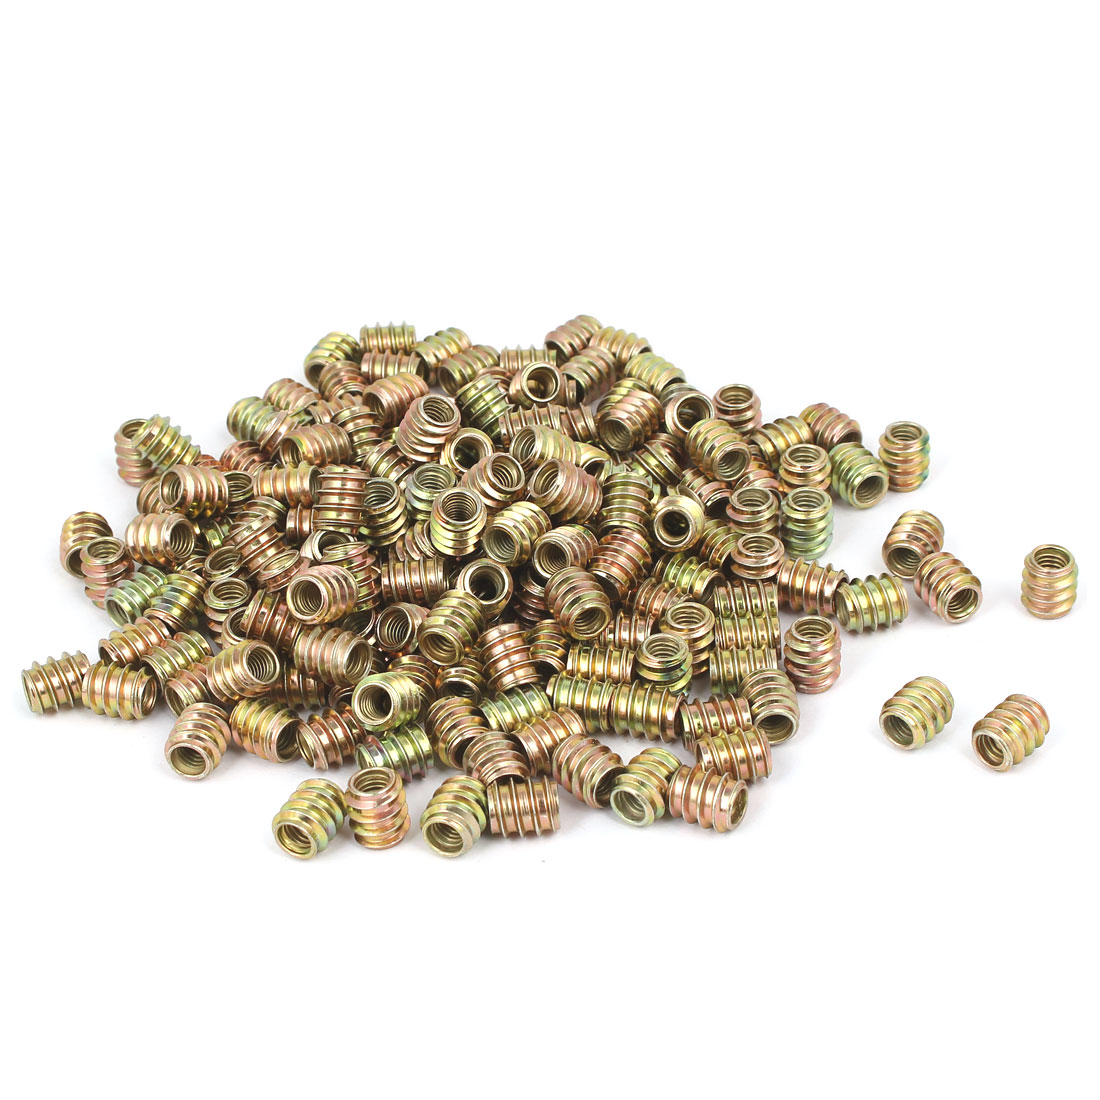 M6x12mm Carbon Steel Yellow Zinc Plated Furniture Threaded Insert Nut 300pcs